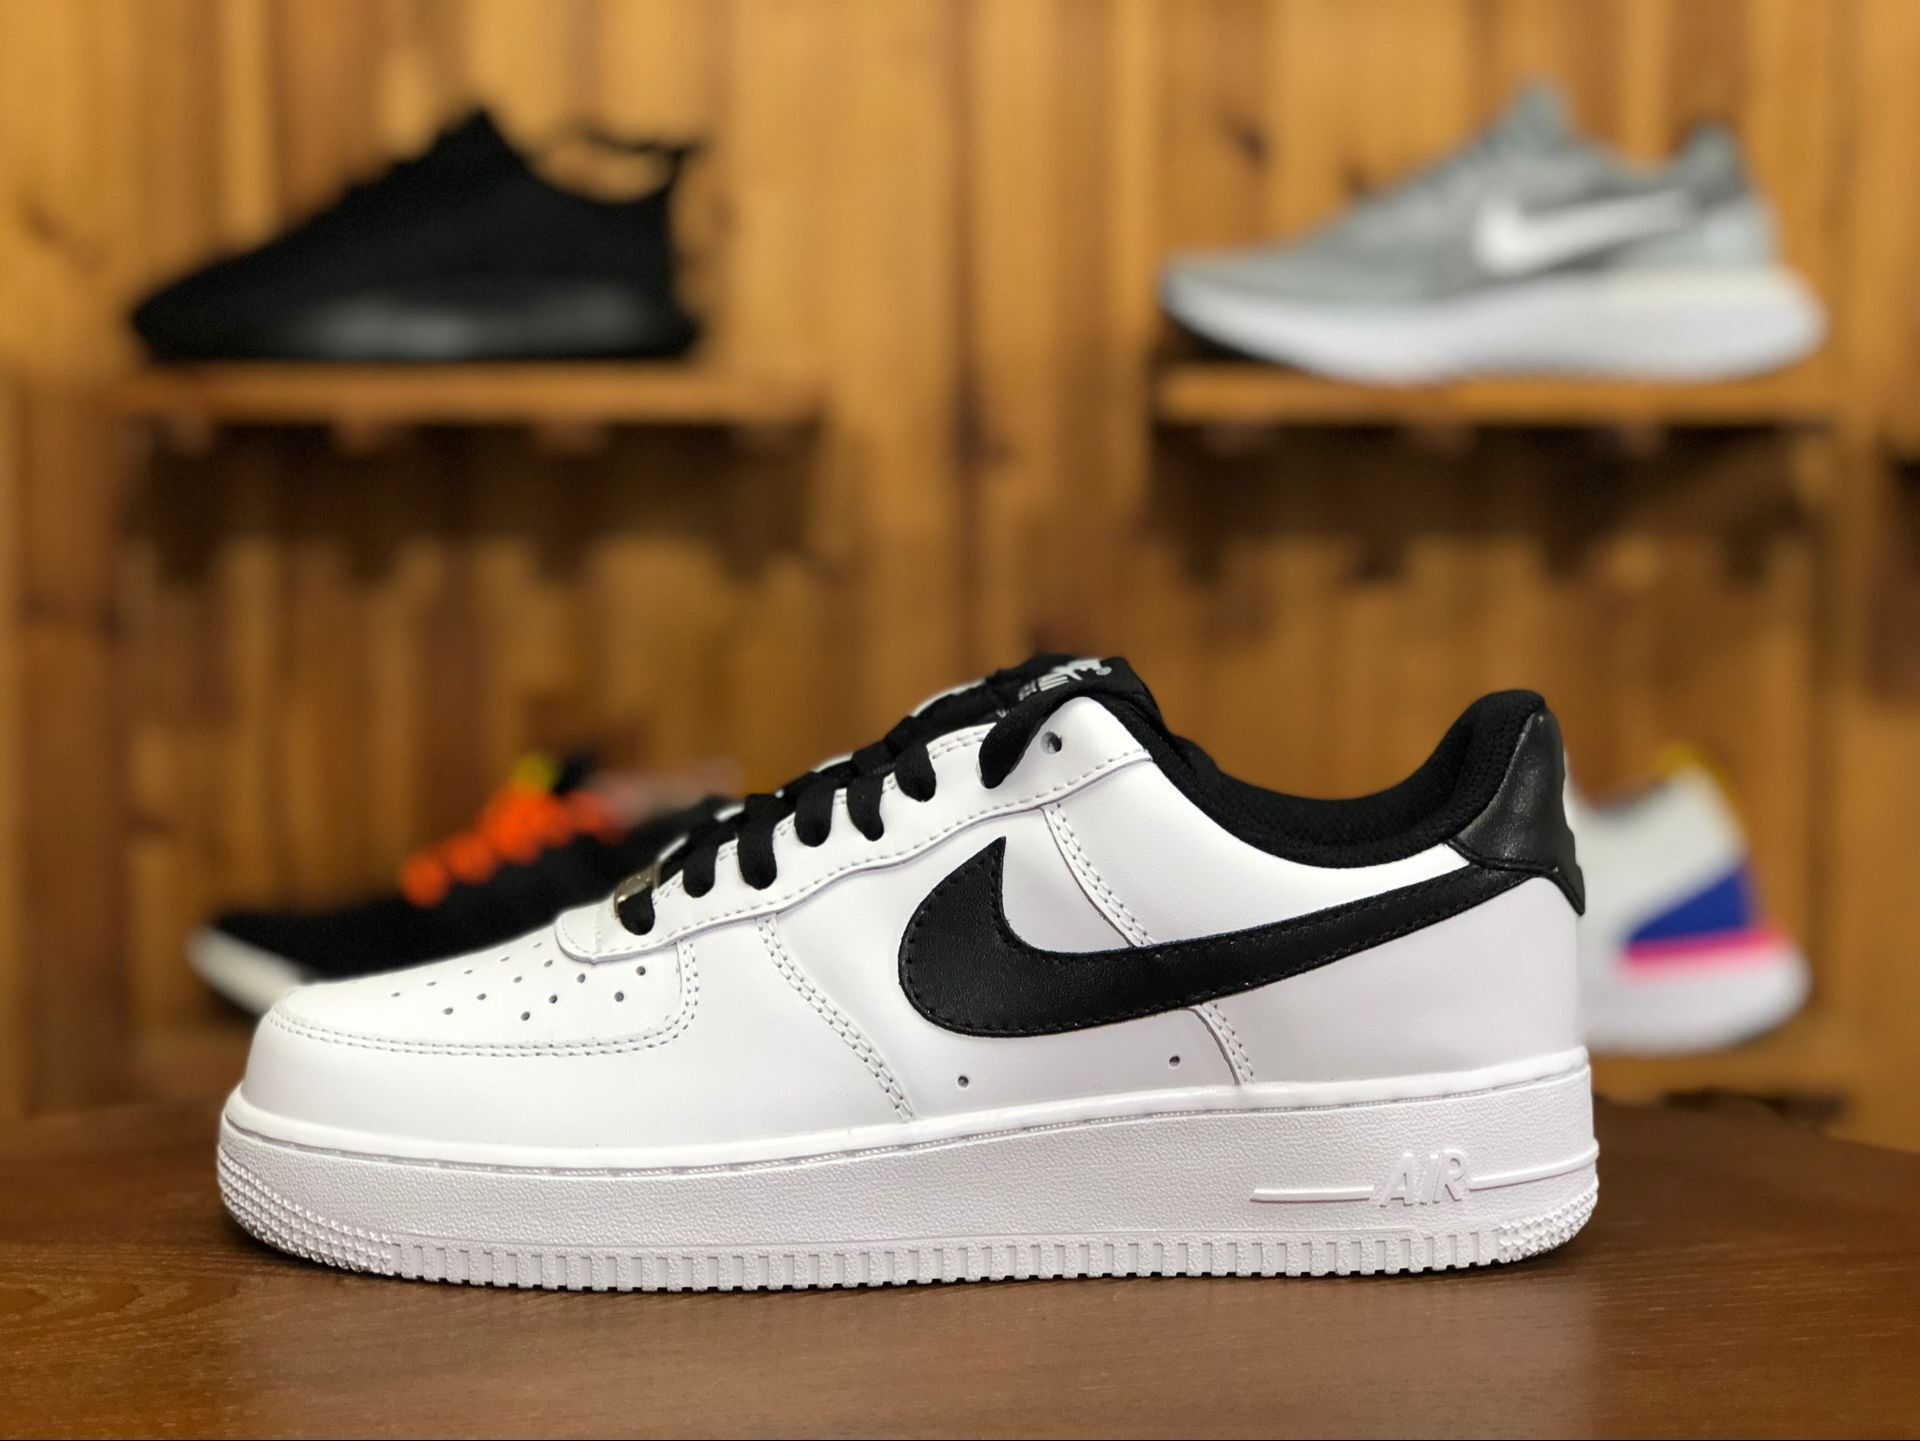 1d26a8027a4 This classic Nike Air Force 1 Low features a White leather upper with Black  detailing on the Nike Swoosh logos